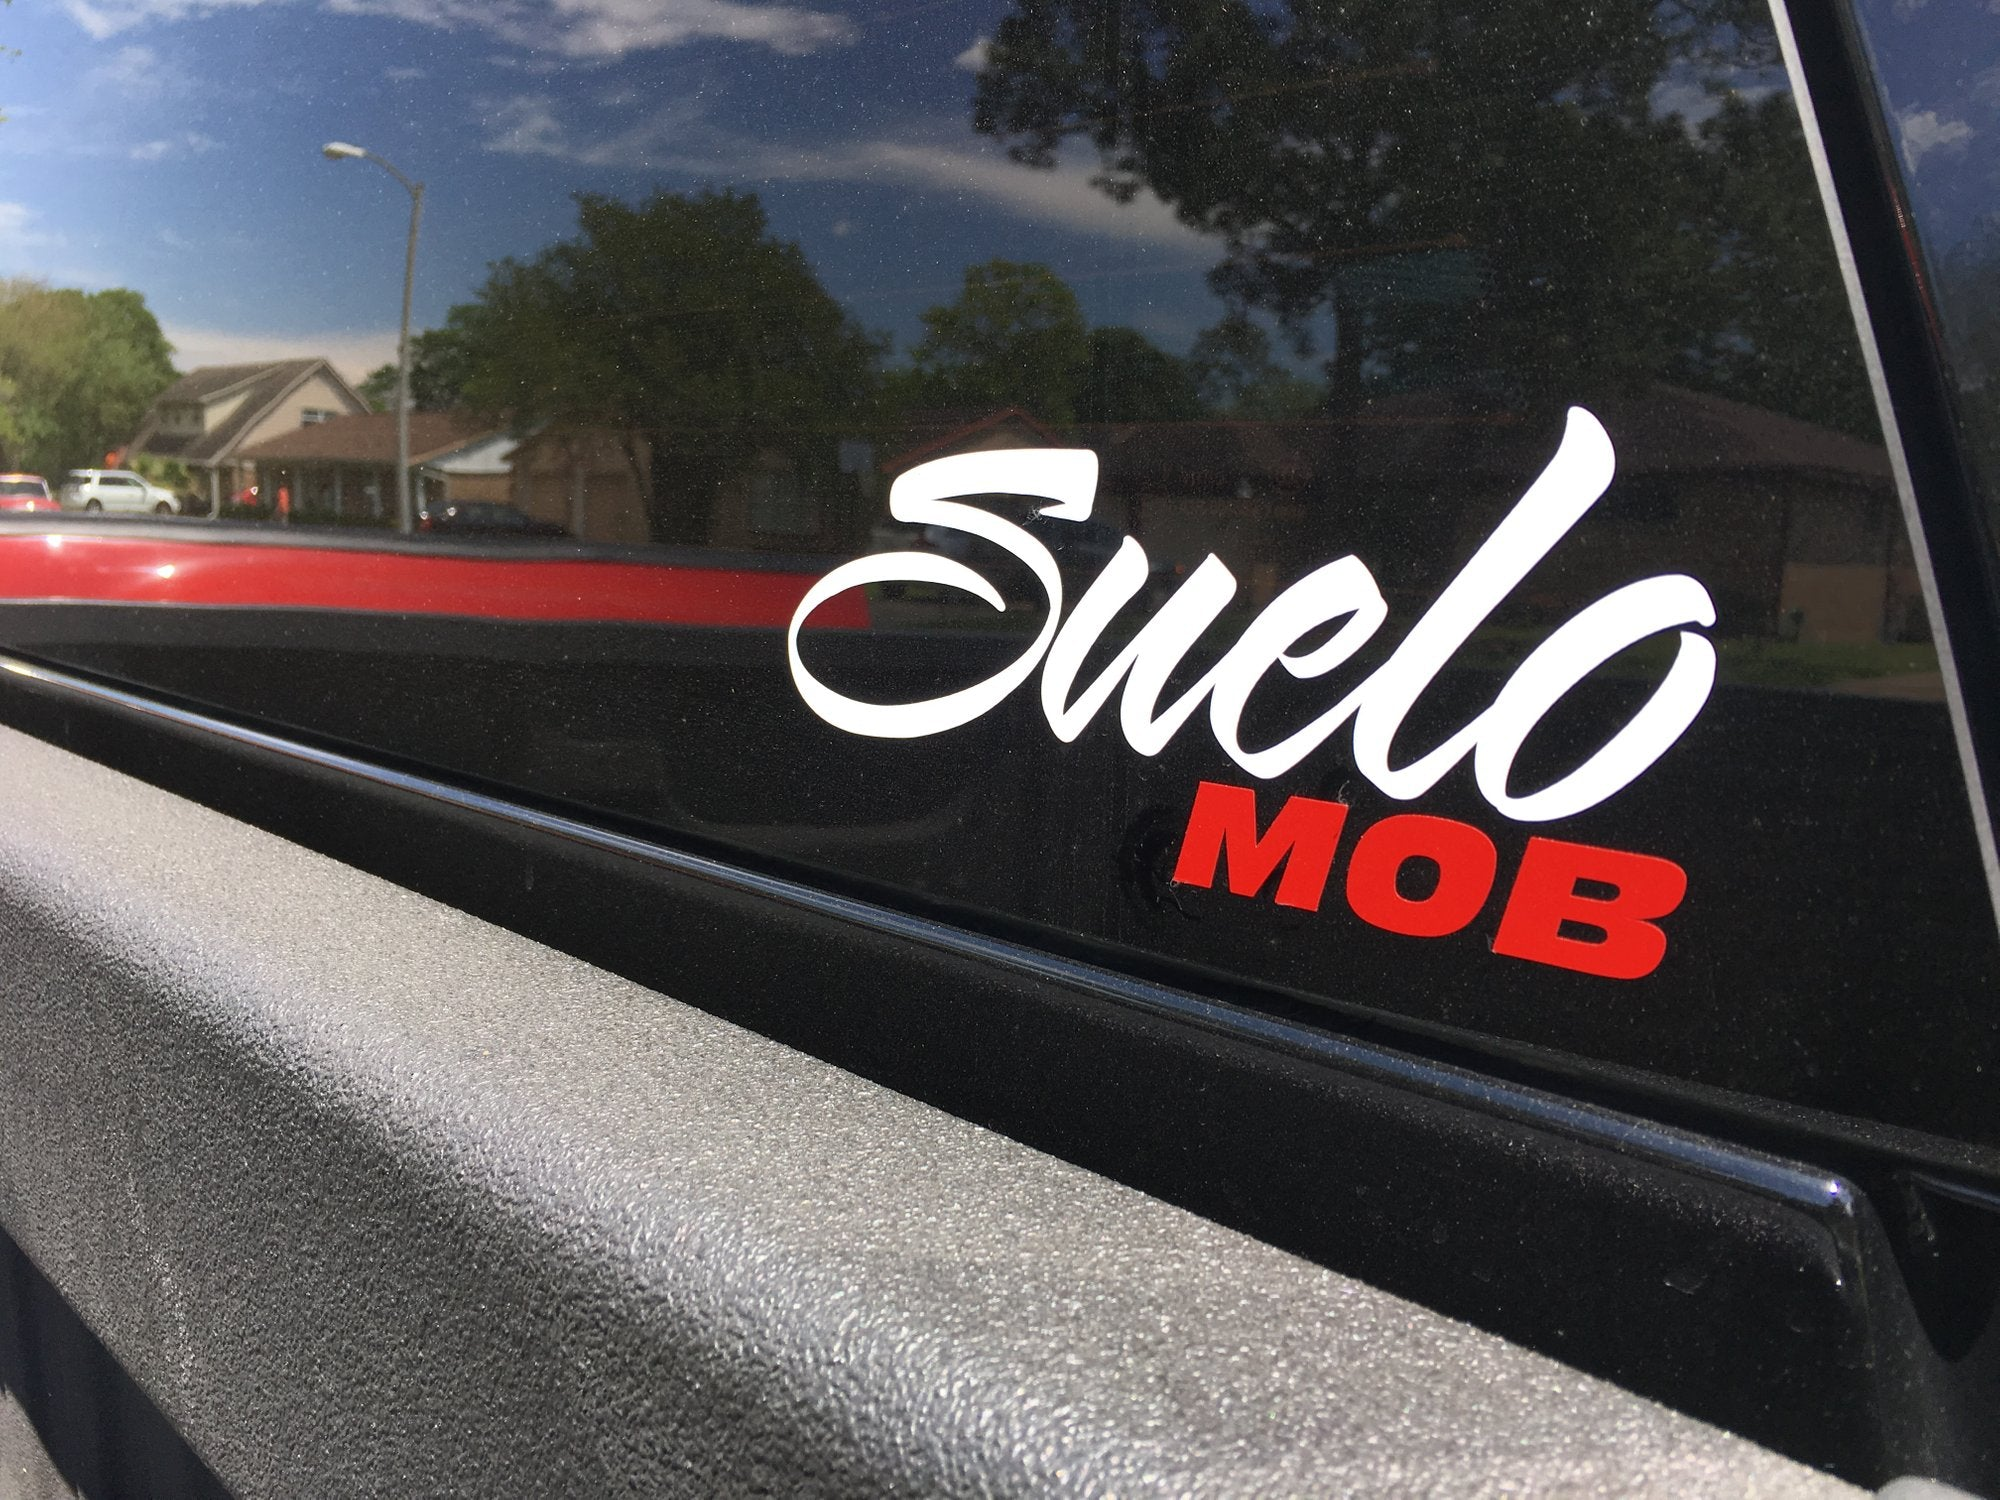 OG SueloMob Decal